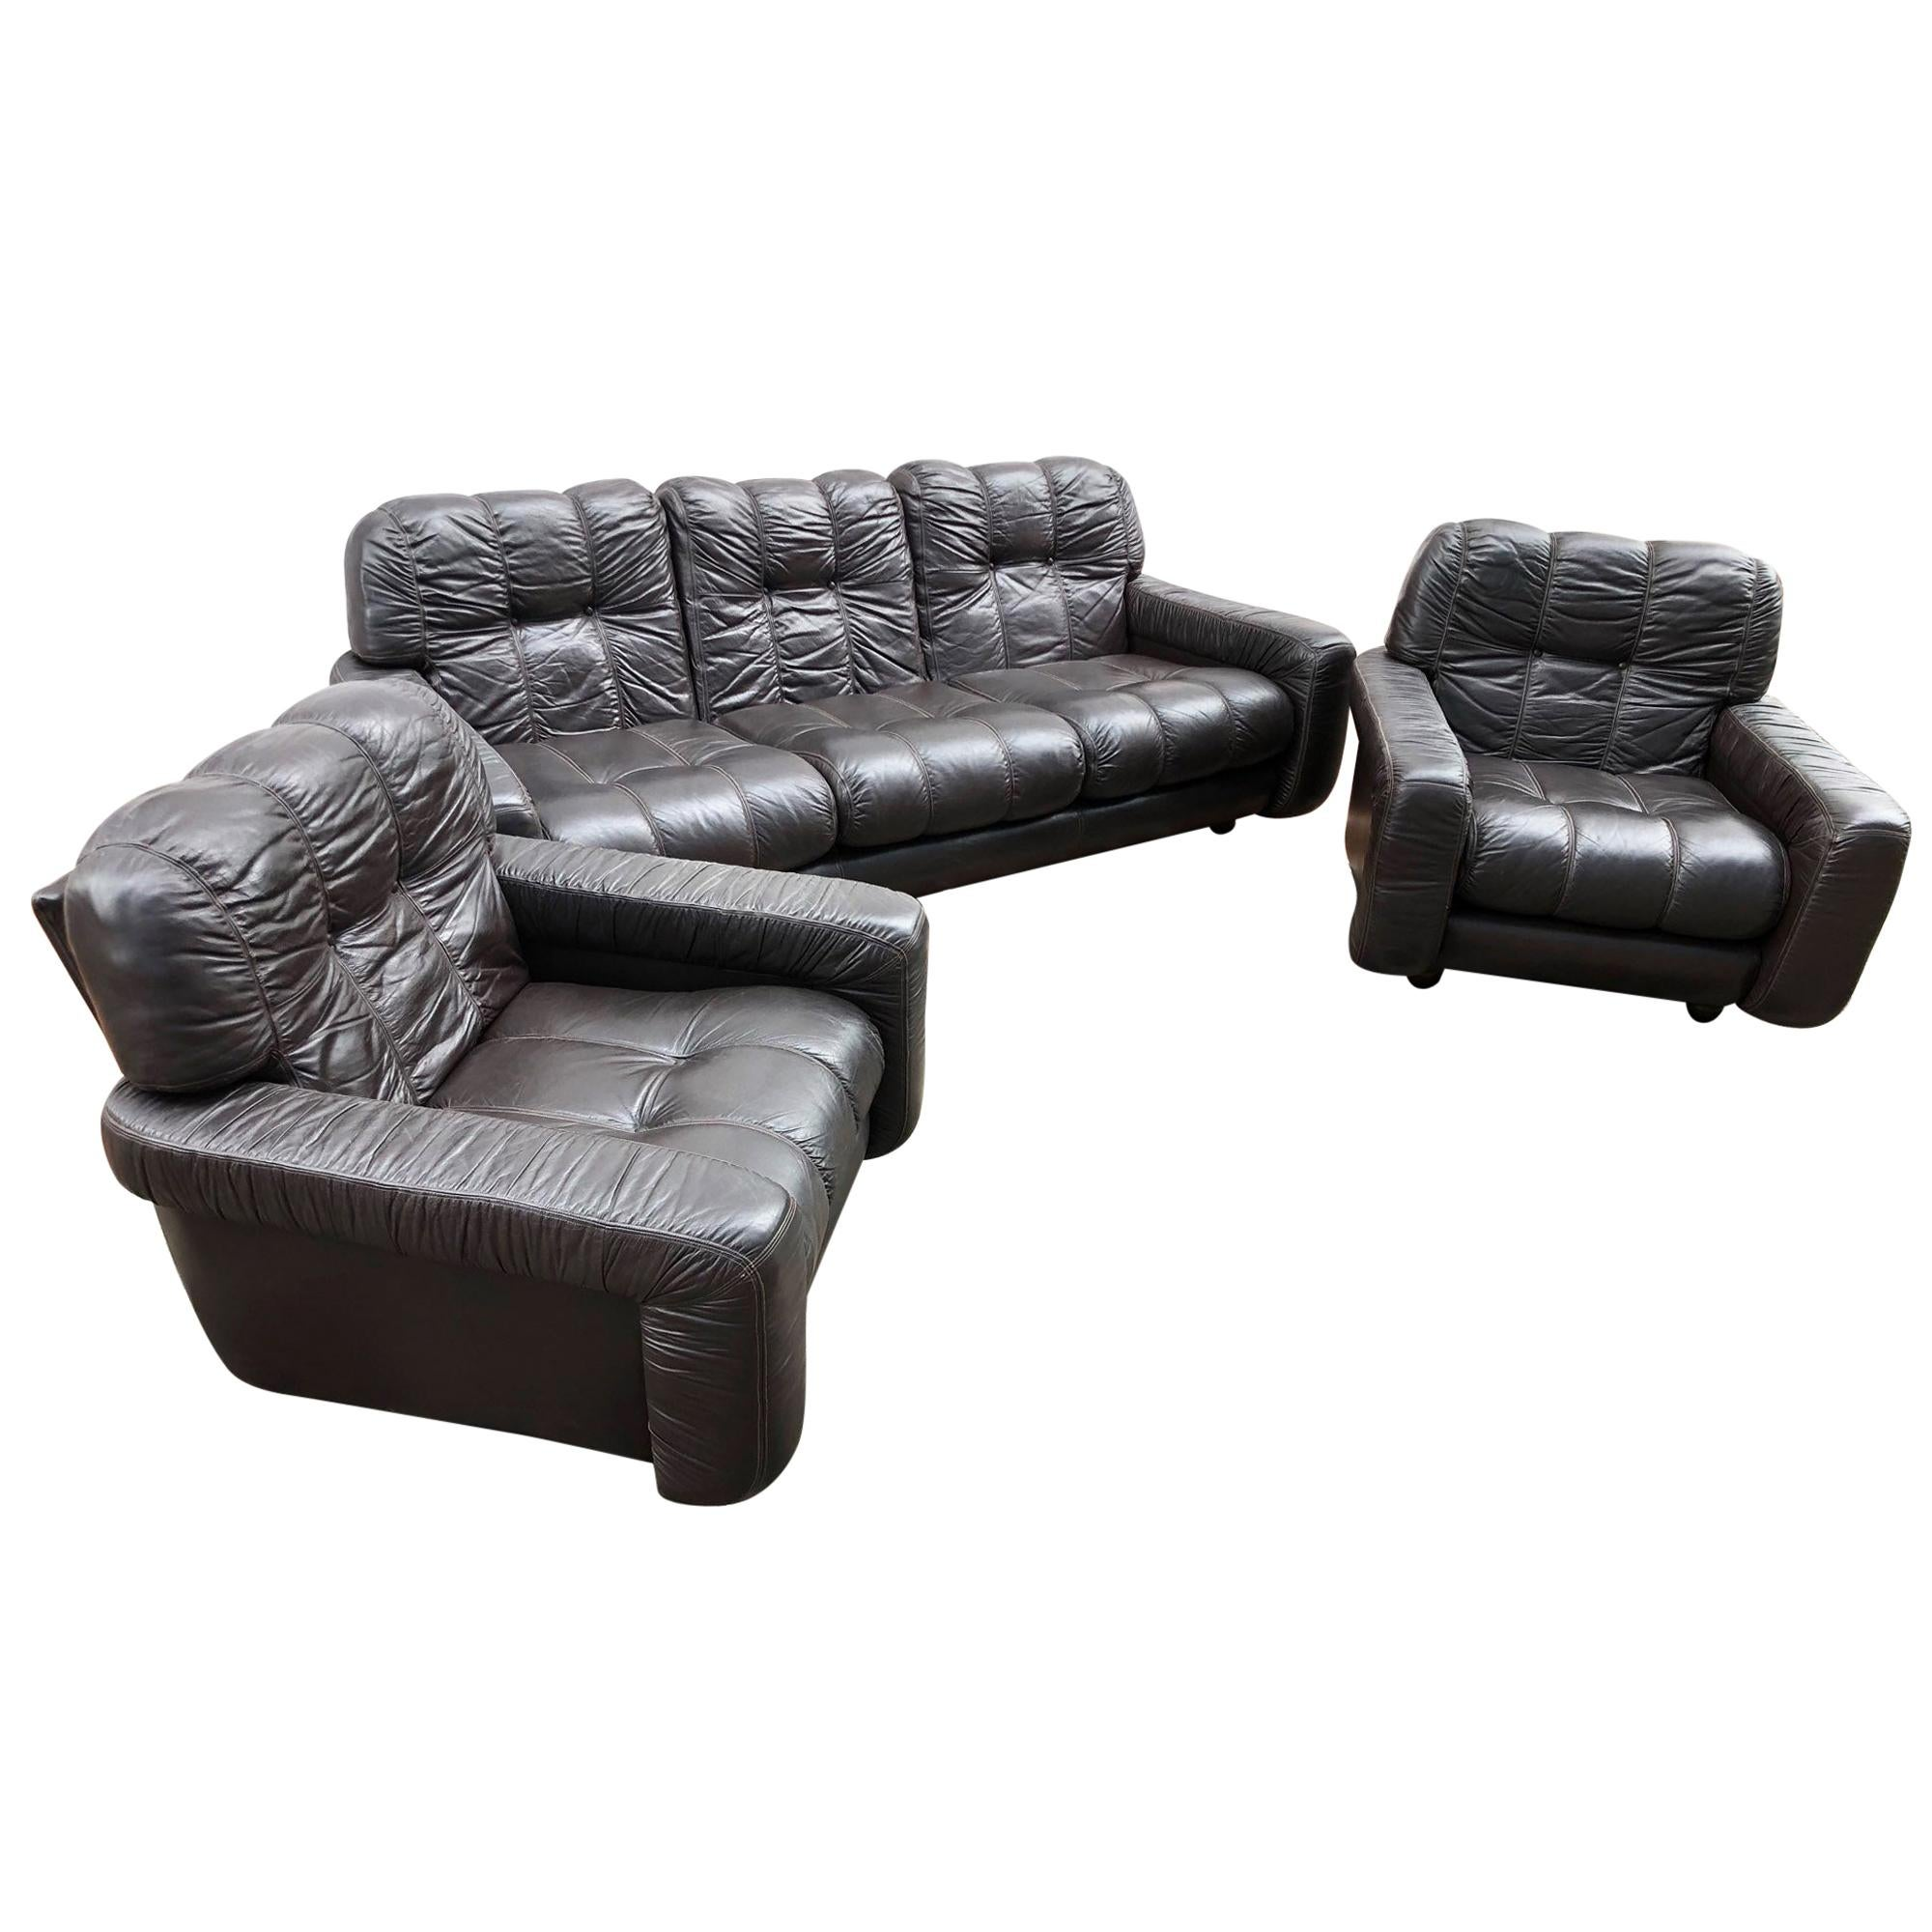 1970s Italian Brown Leather Sofa and Armchairs, Very Comfortable and Deep Design